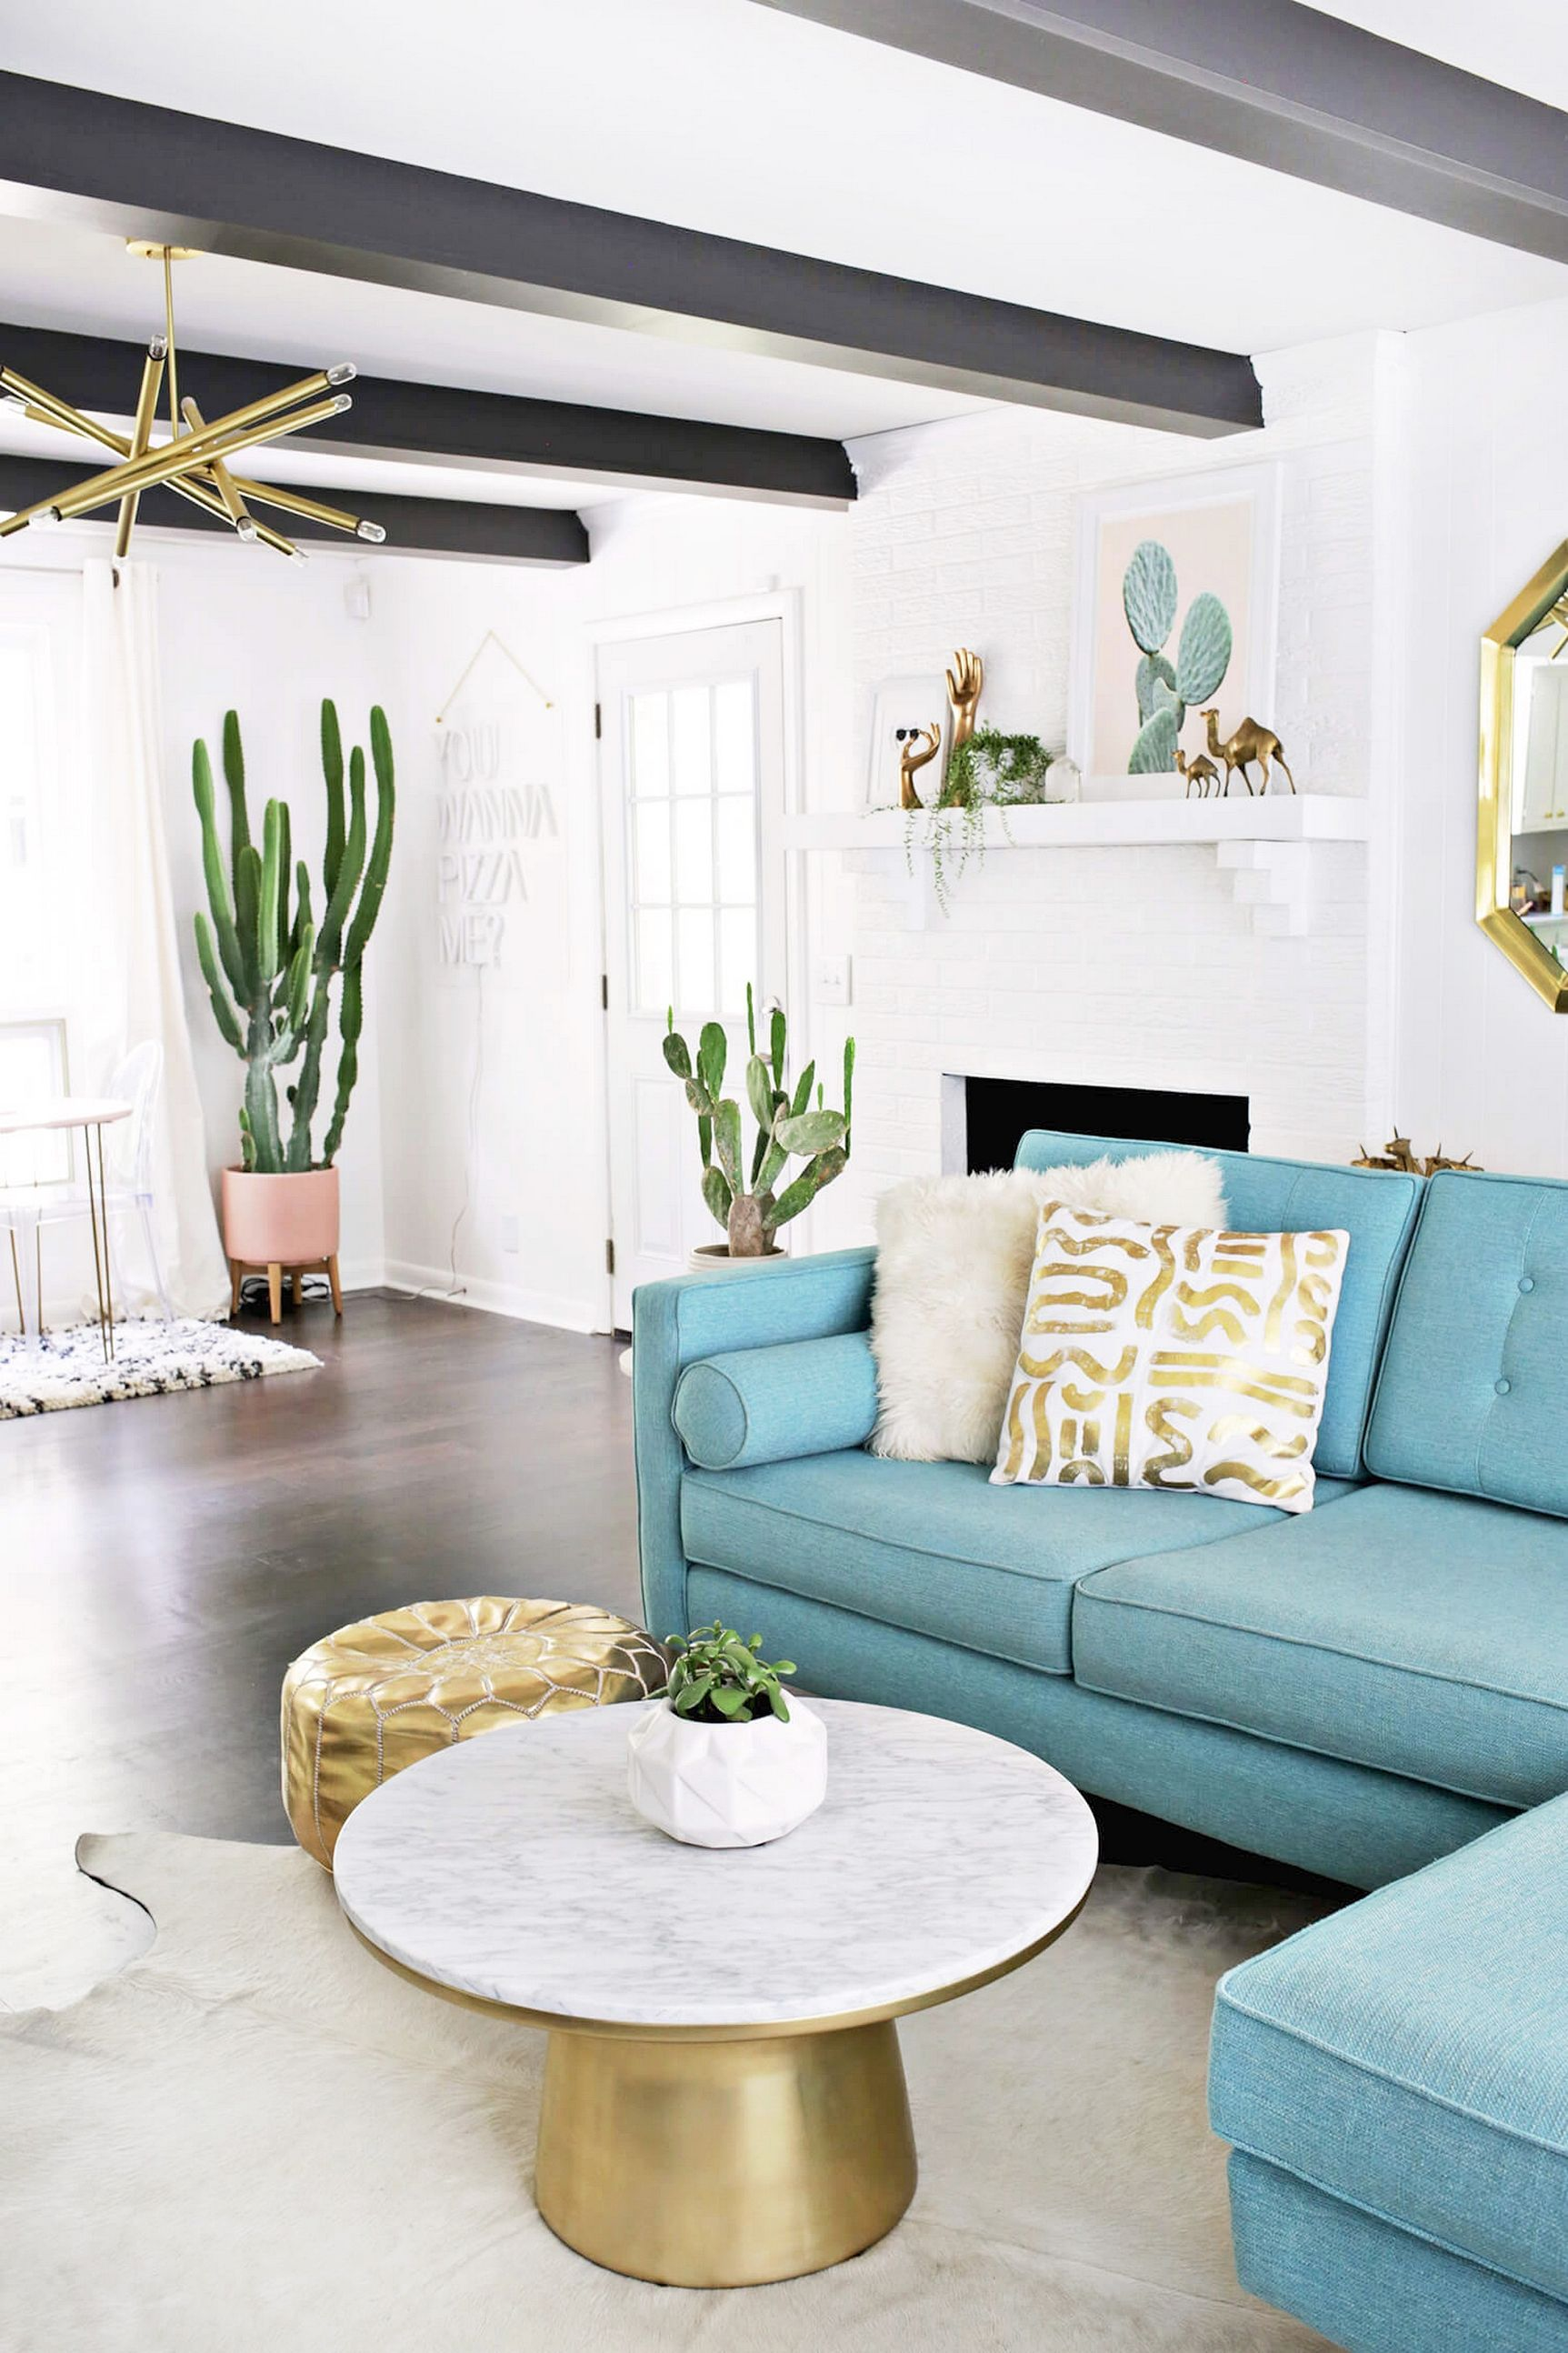 75 Best Ideas to Decorate Your Living Room With Turquoise Accents ...